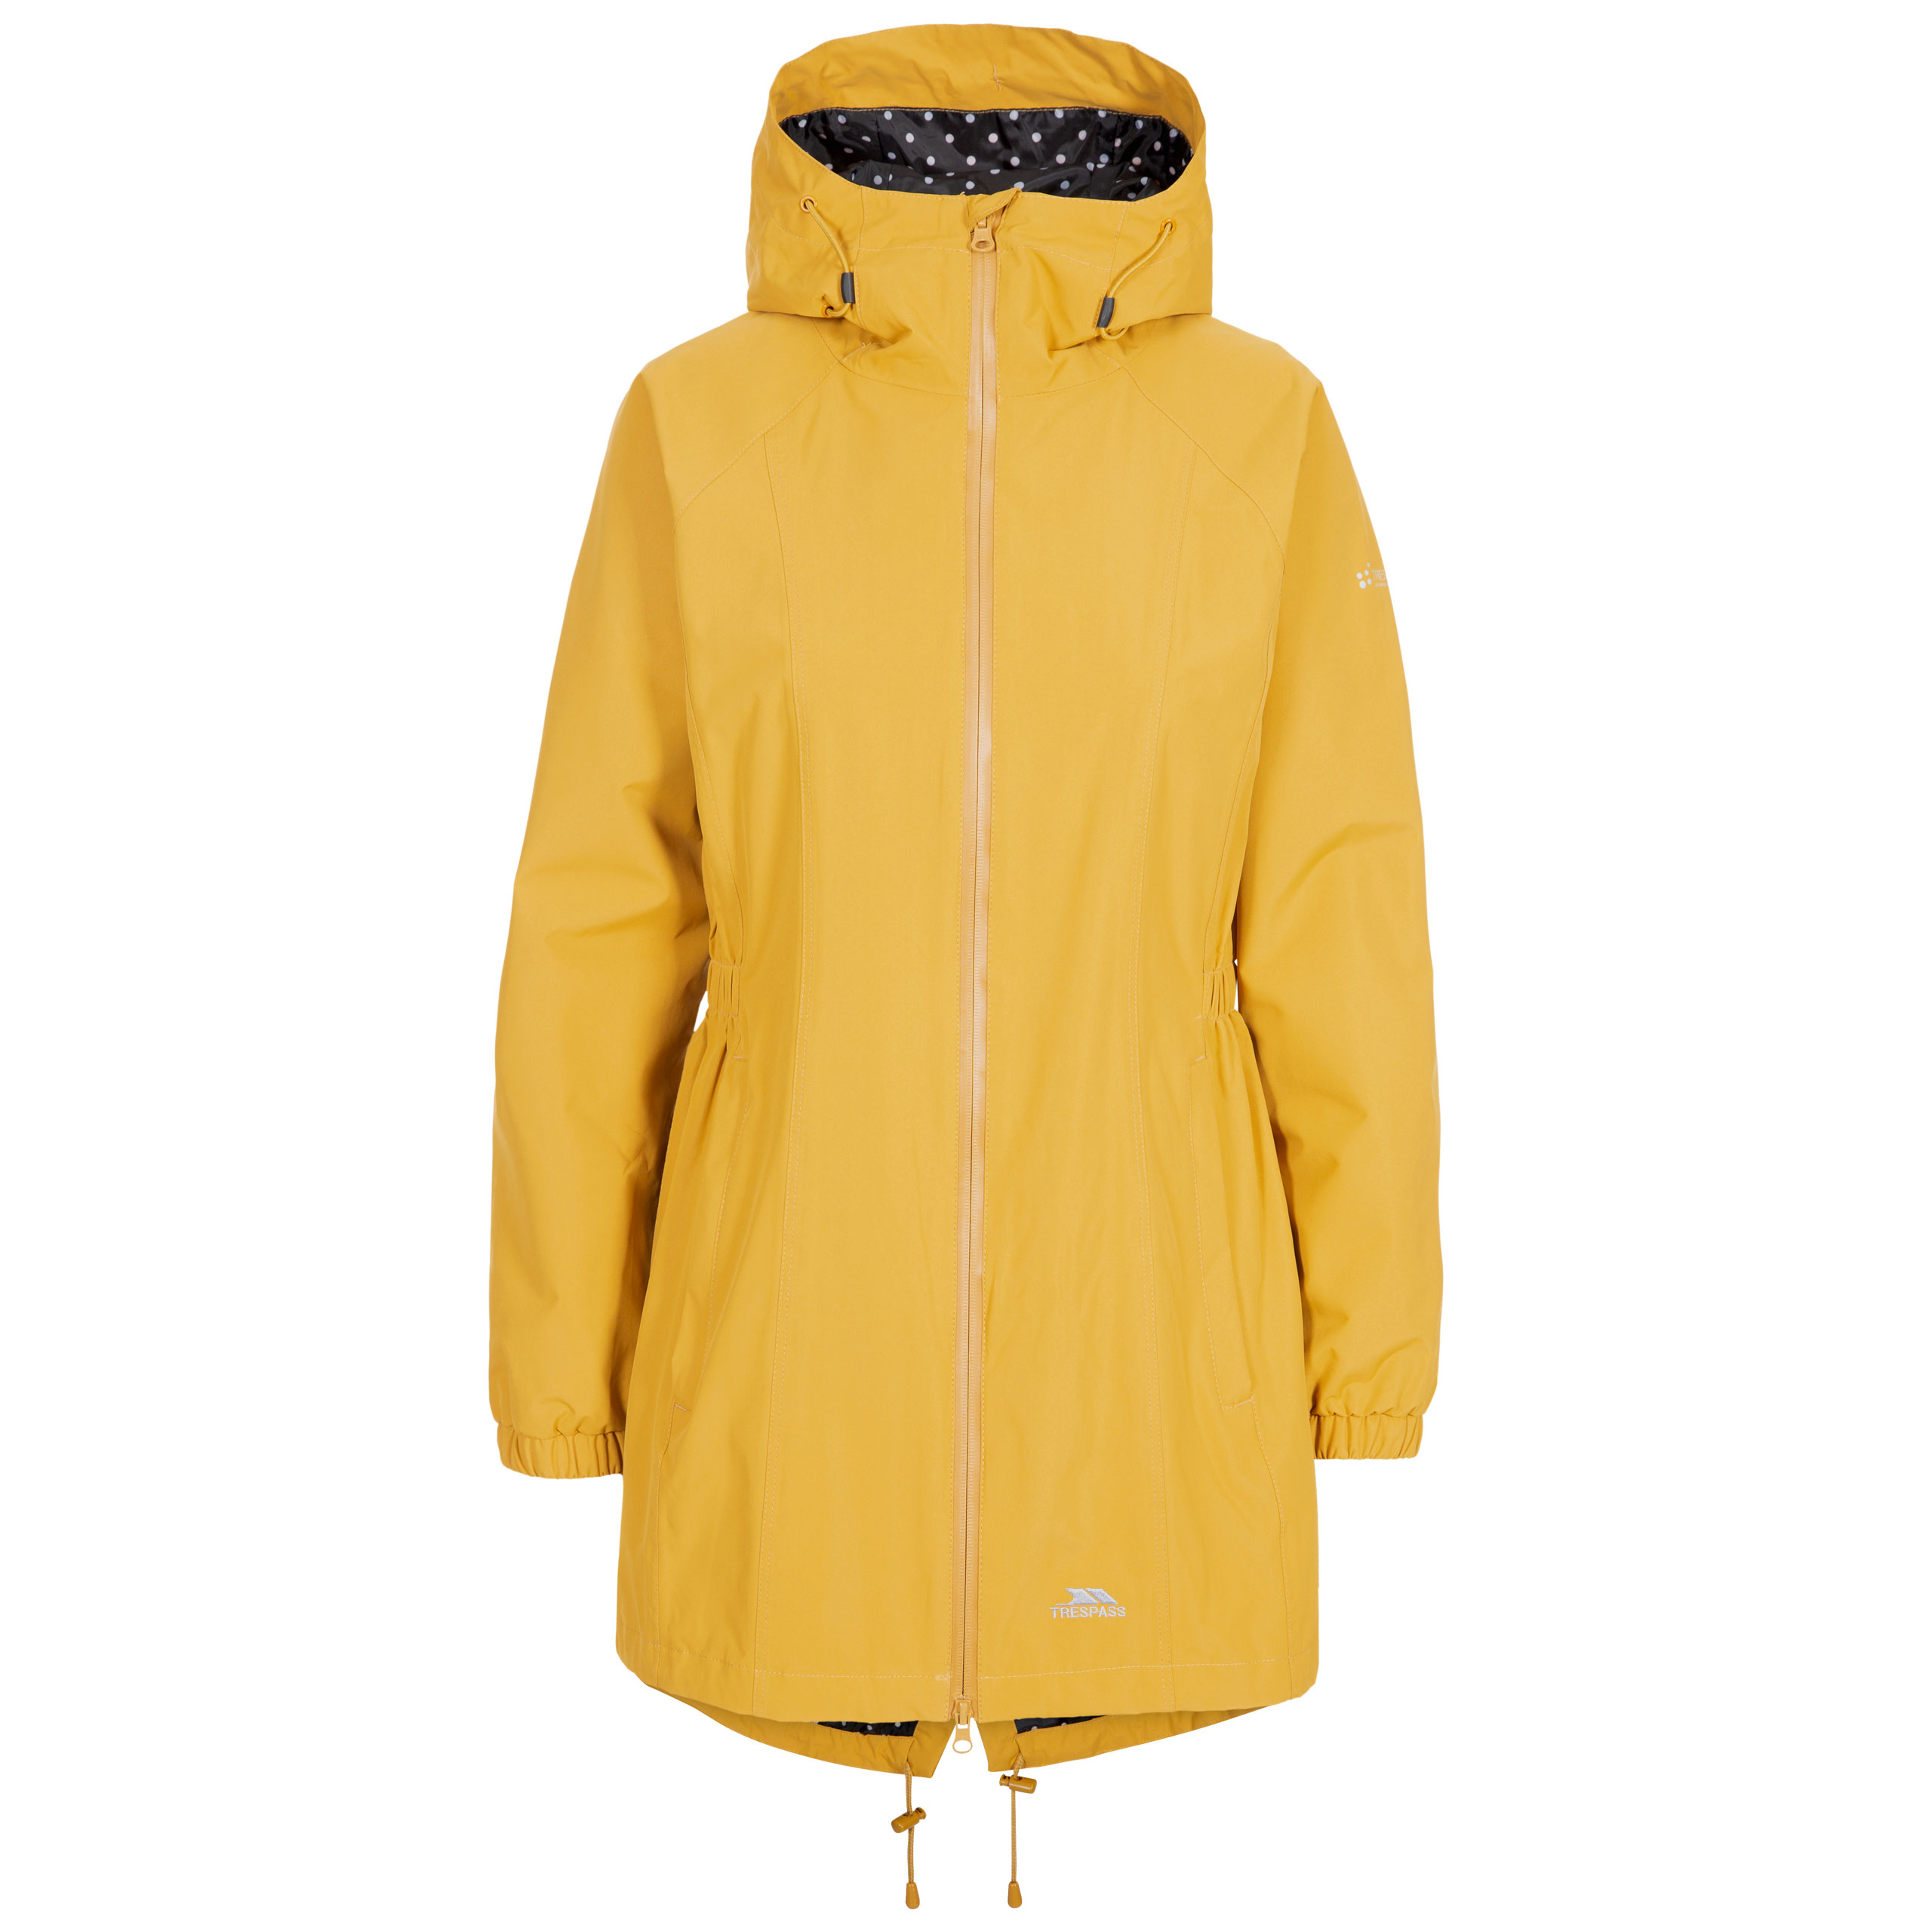 Trespass-Womens-Parka-Jacket-Hooded-Waterproof-Longline-Coat-Polka-Dot thumbnail 17